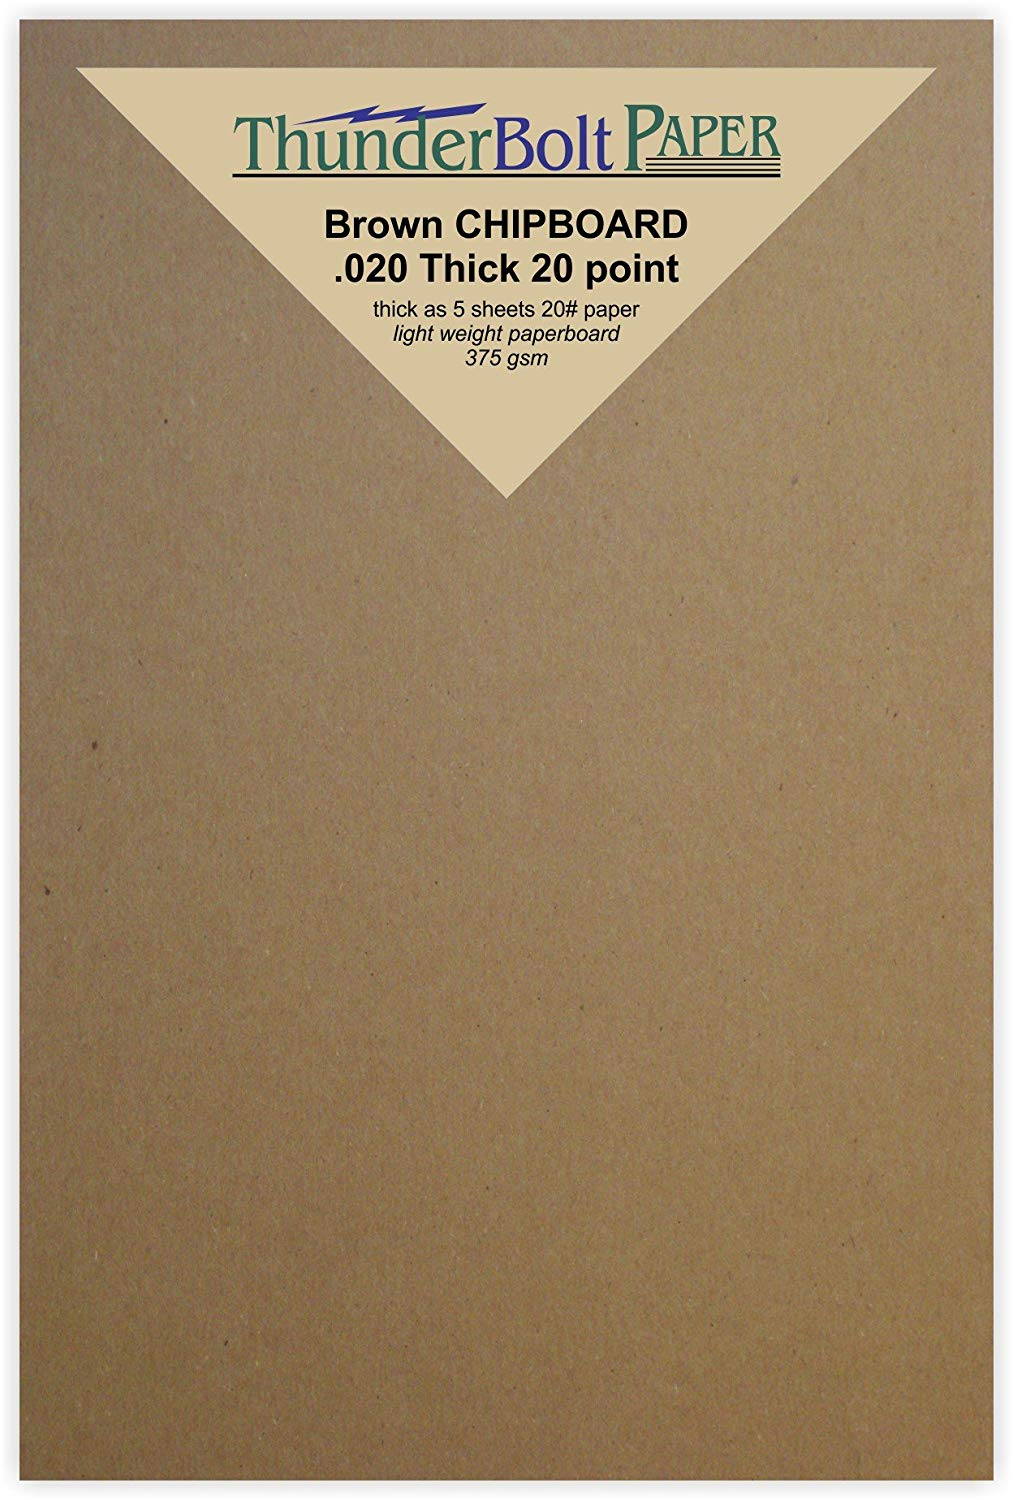 22pt Point .022 Caliper Thick MagicWater Supply Paper Board Light Weight Brown Kraft Cardboard for Scrapbooking /& Picture Frame Backing 100 Chipboard Sheets 8 x 10 inch